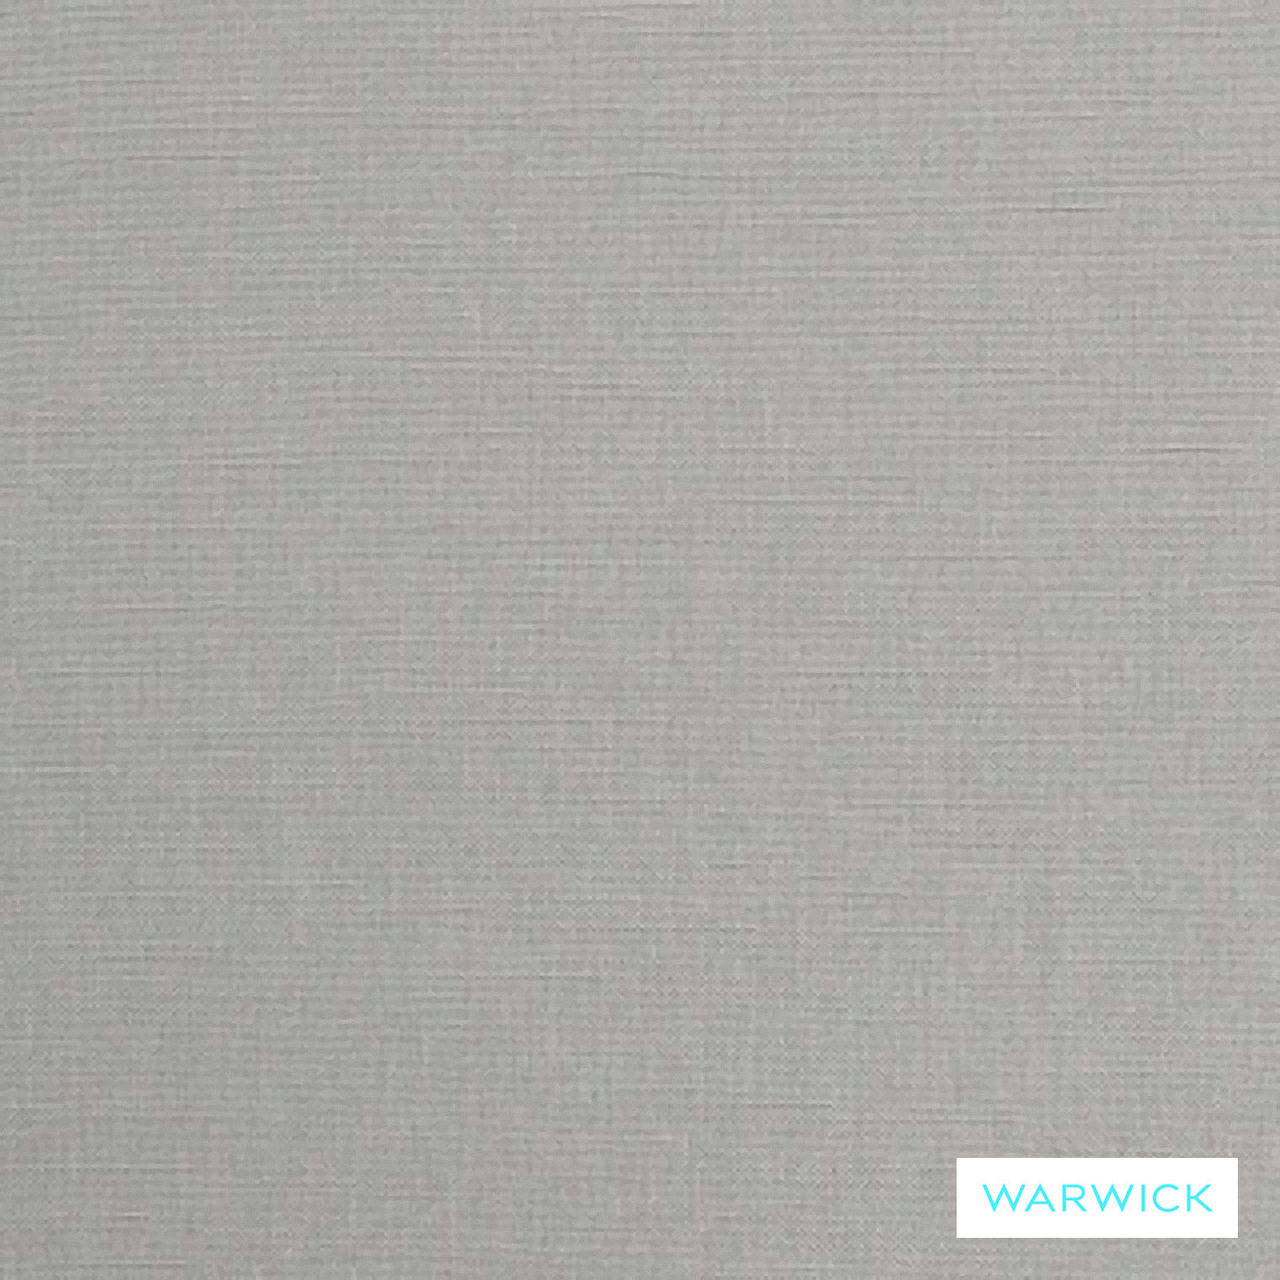 Silver' | Curtain Fabric - Plain, Silver, Synthetic fibre, Transitional, Washable, Domestic Use, Halo